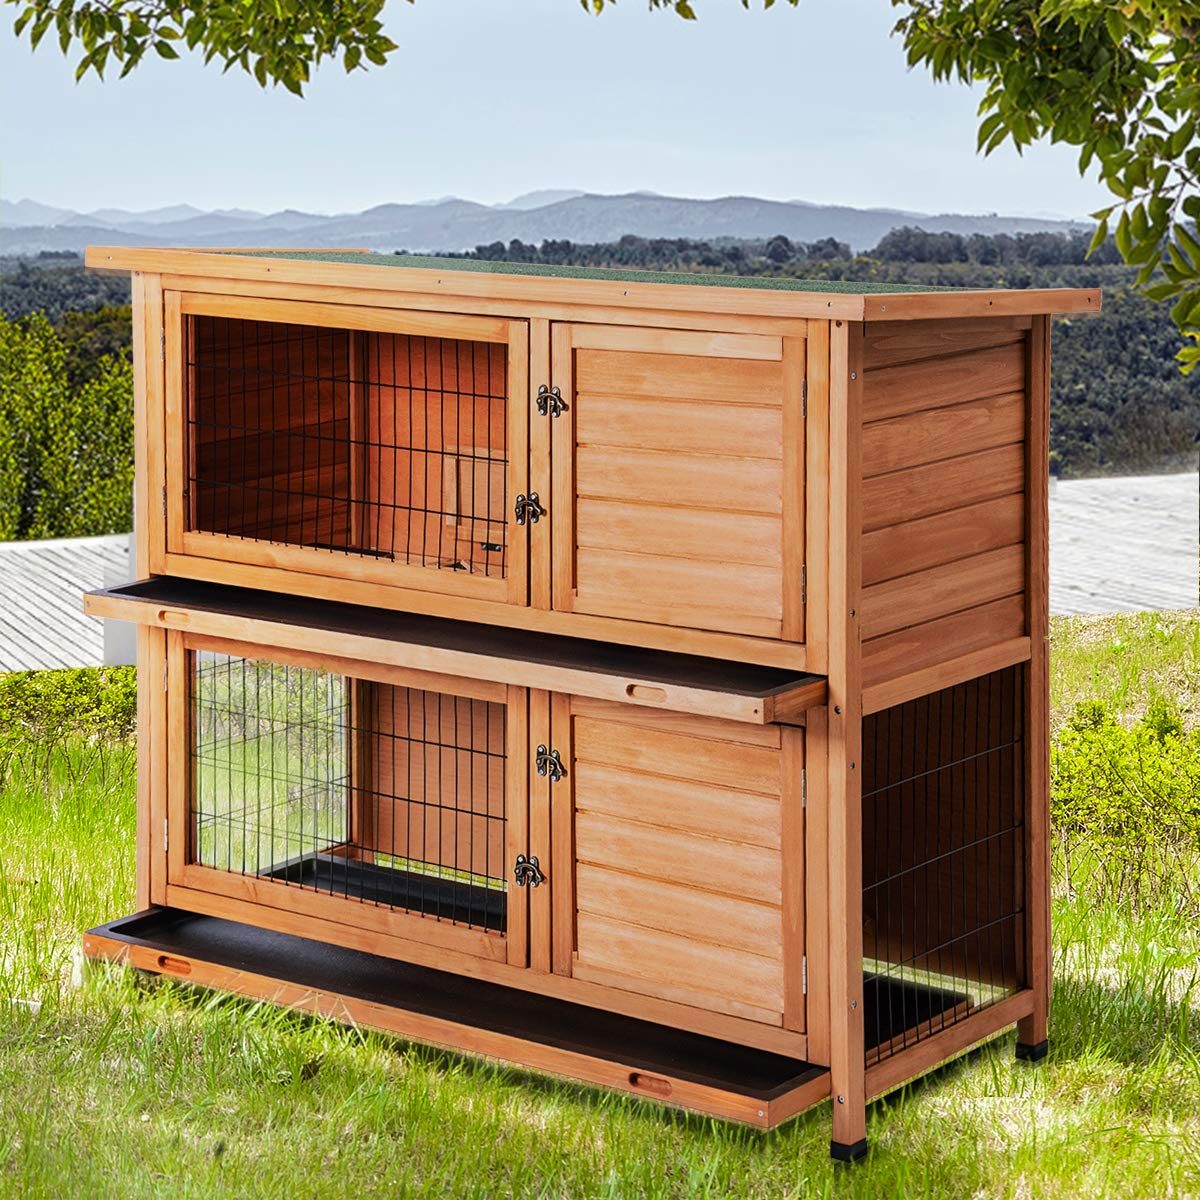 Merax Rabbit Hutch Wooden House Wooden Cage for Small Animals (Rabbit Hutch#1) by Merax